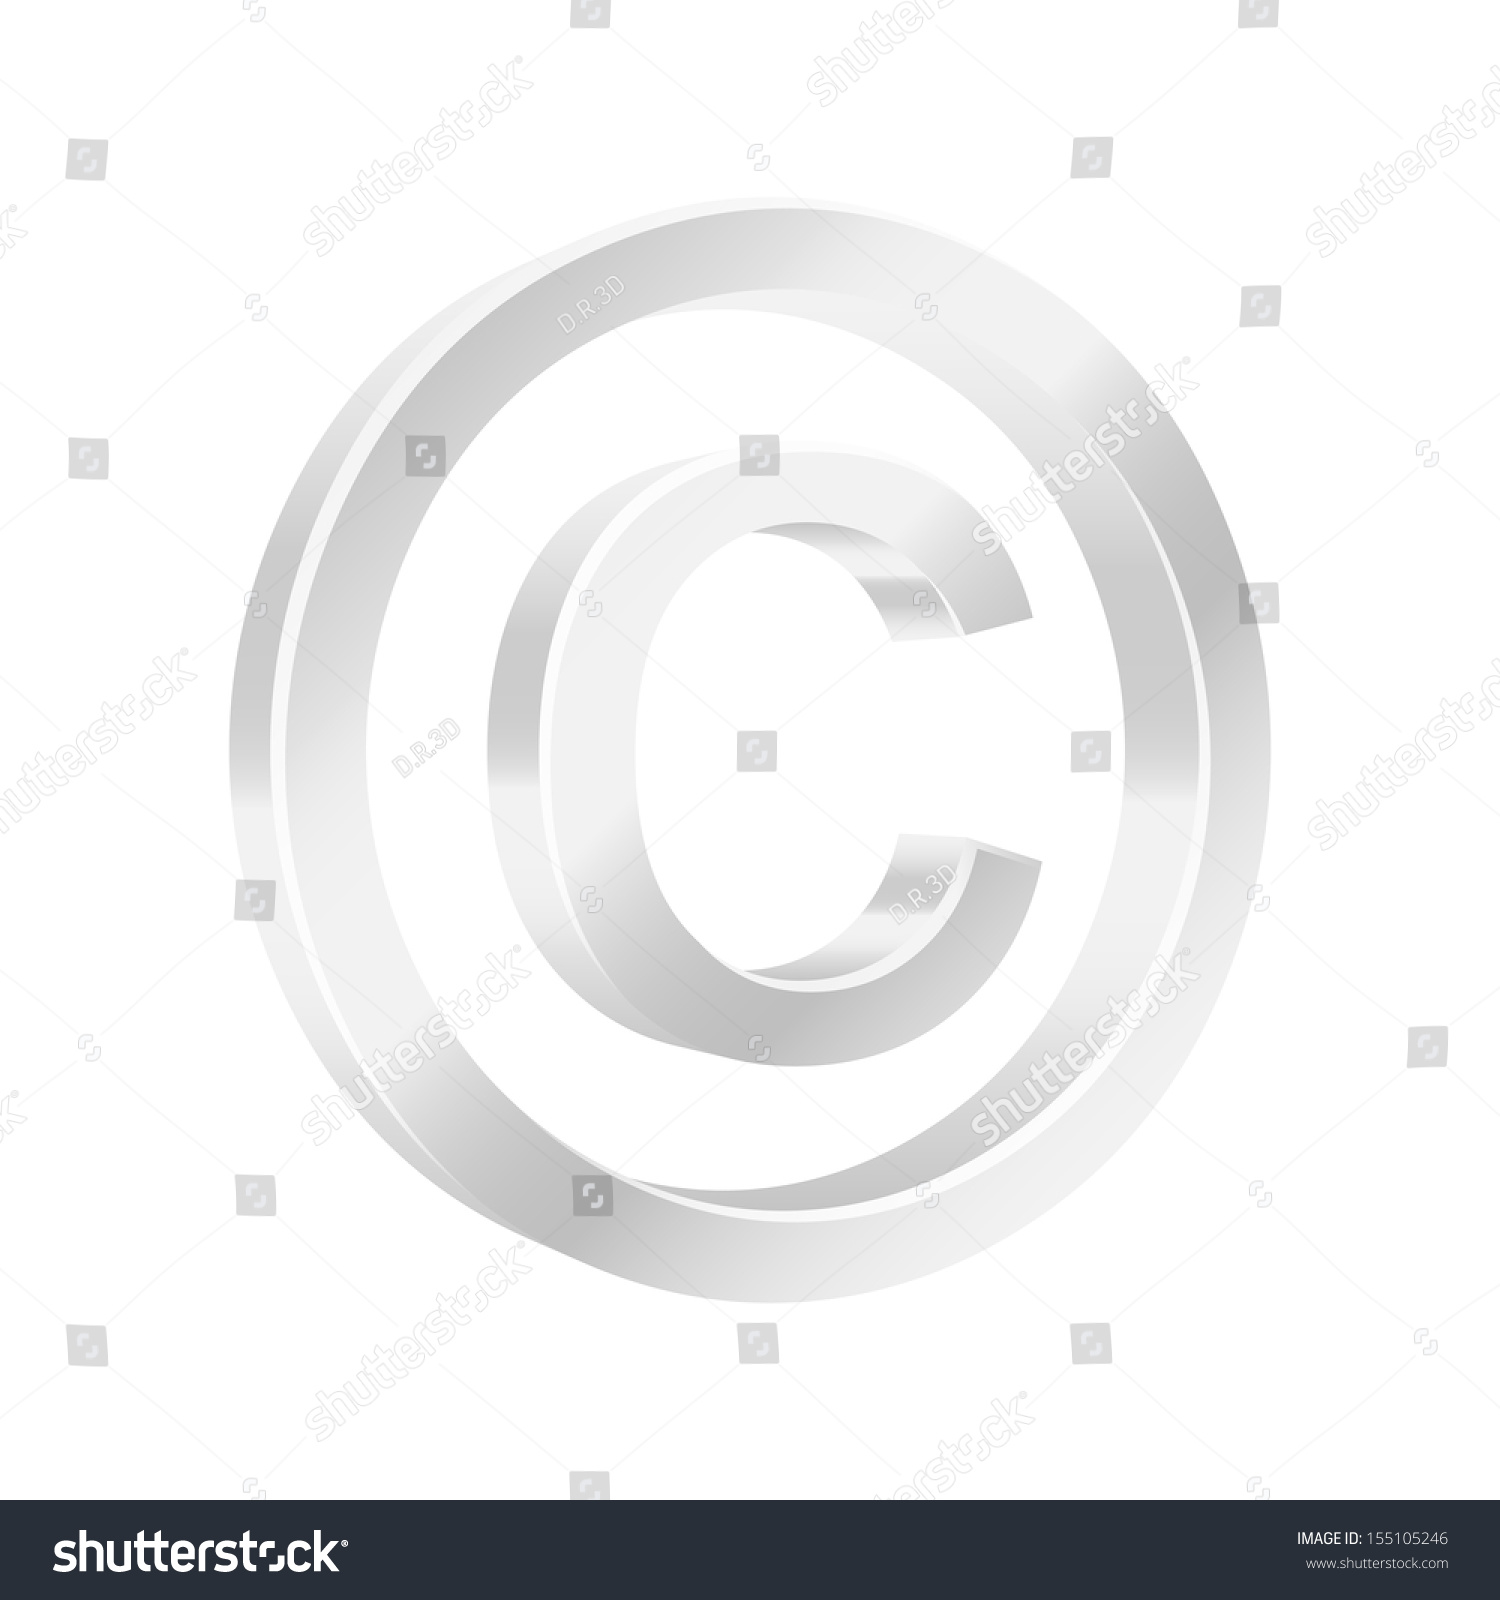 Protect Copyright Symbol 2 D Illustration Stock Illustration